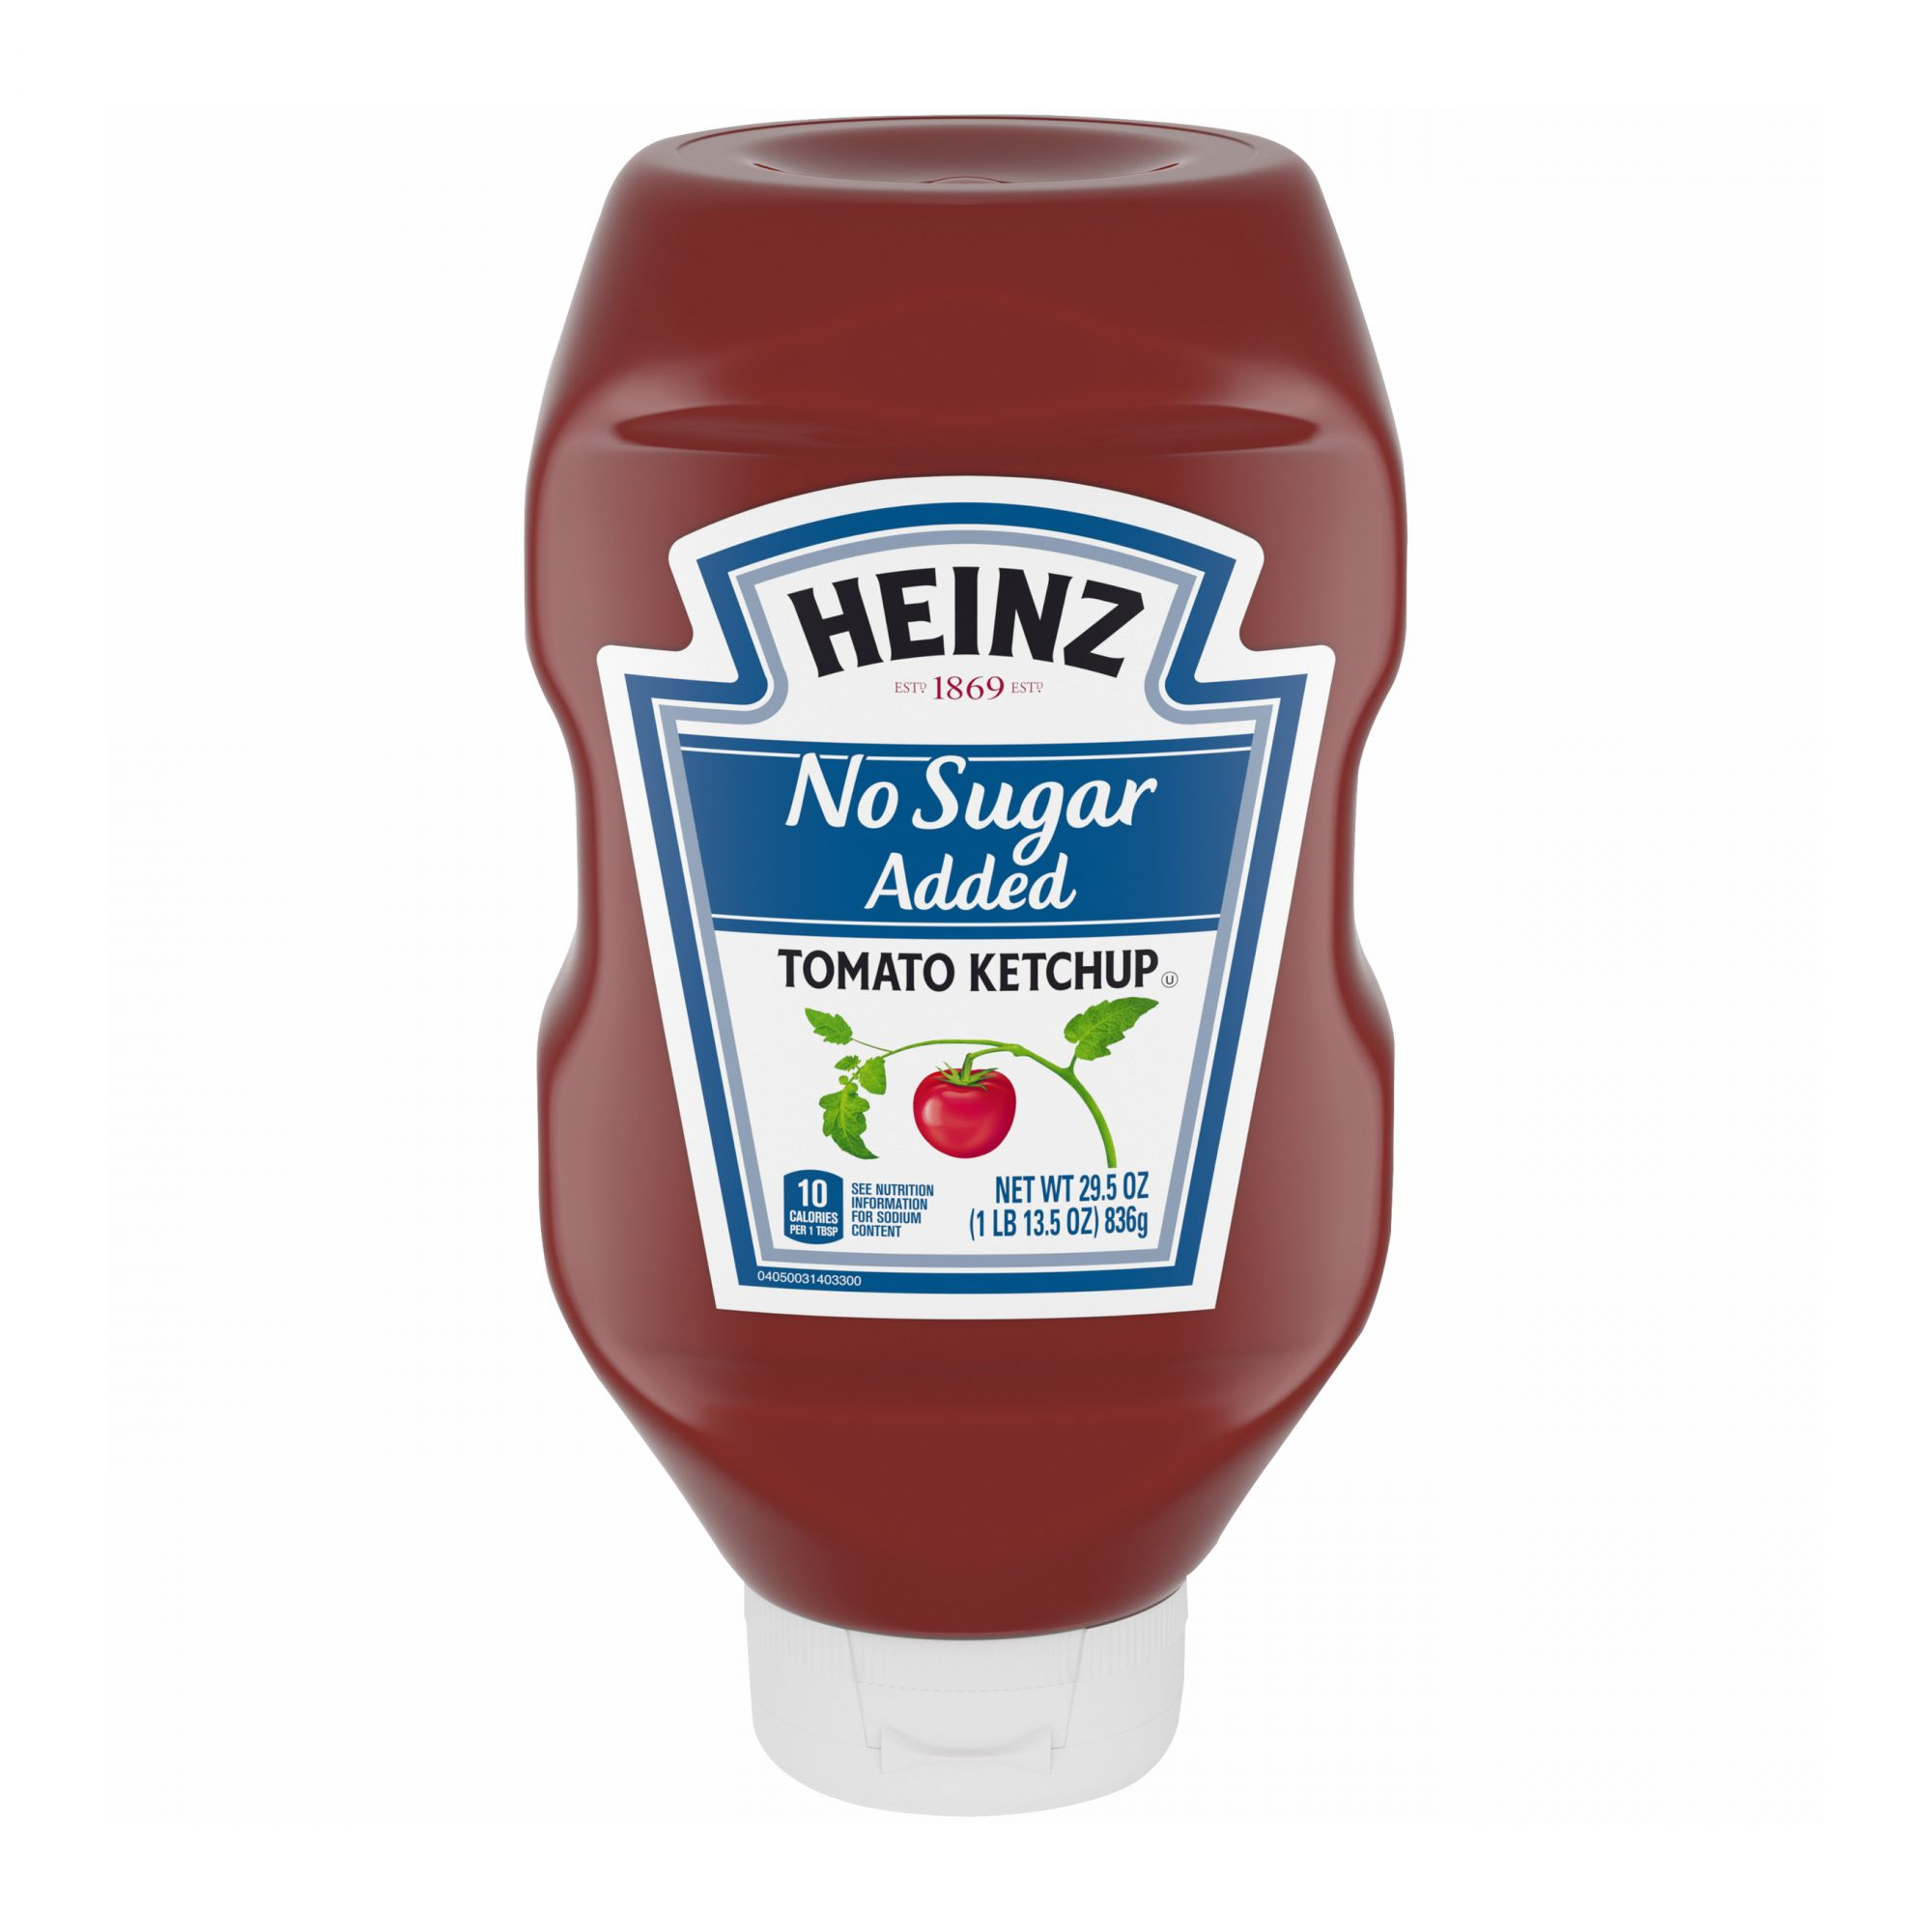 http://www.heinz.com/product/00013000011105Heinz Ketchup - No Sugar Added